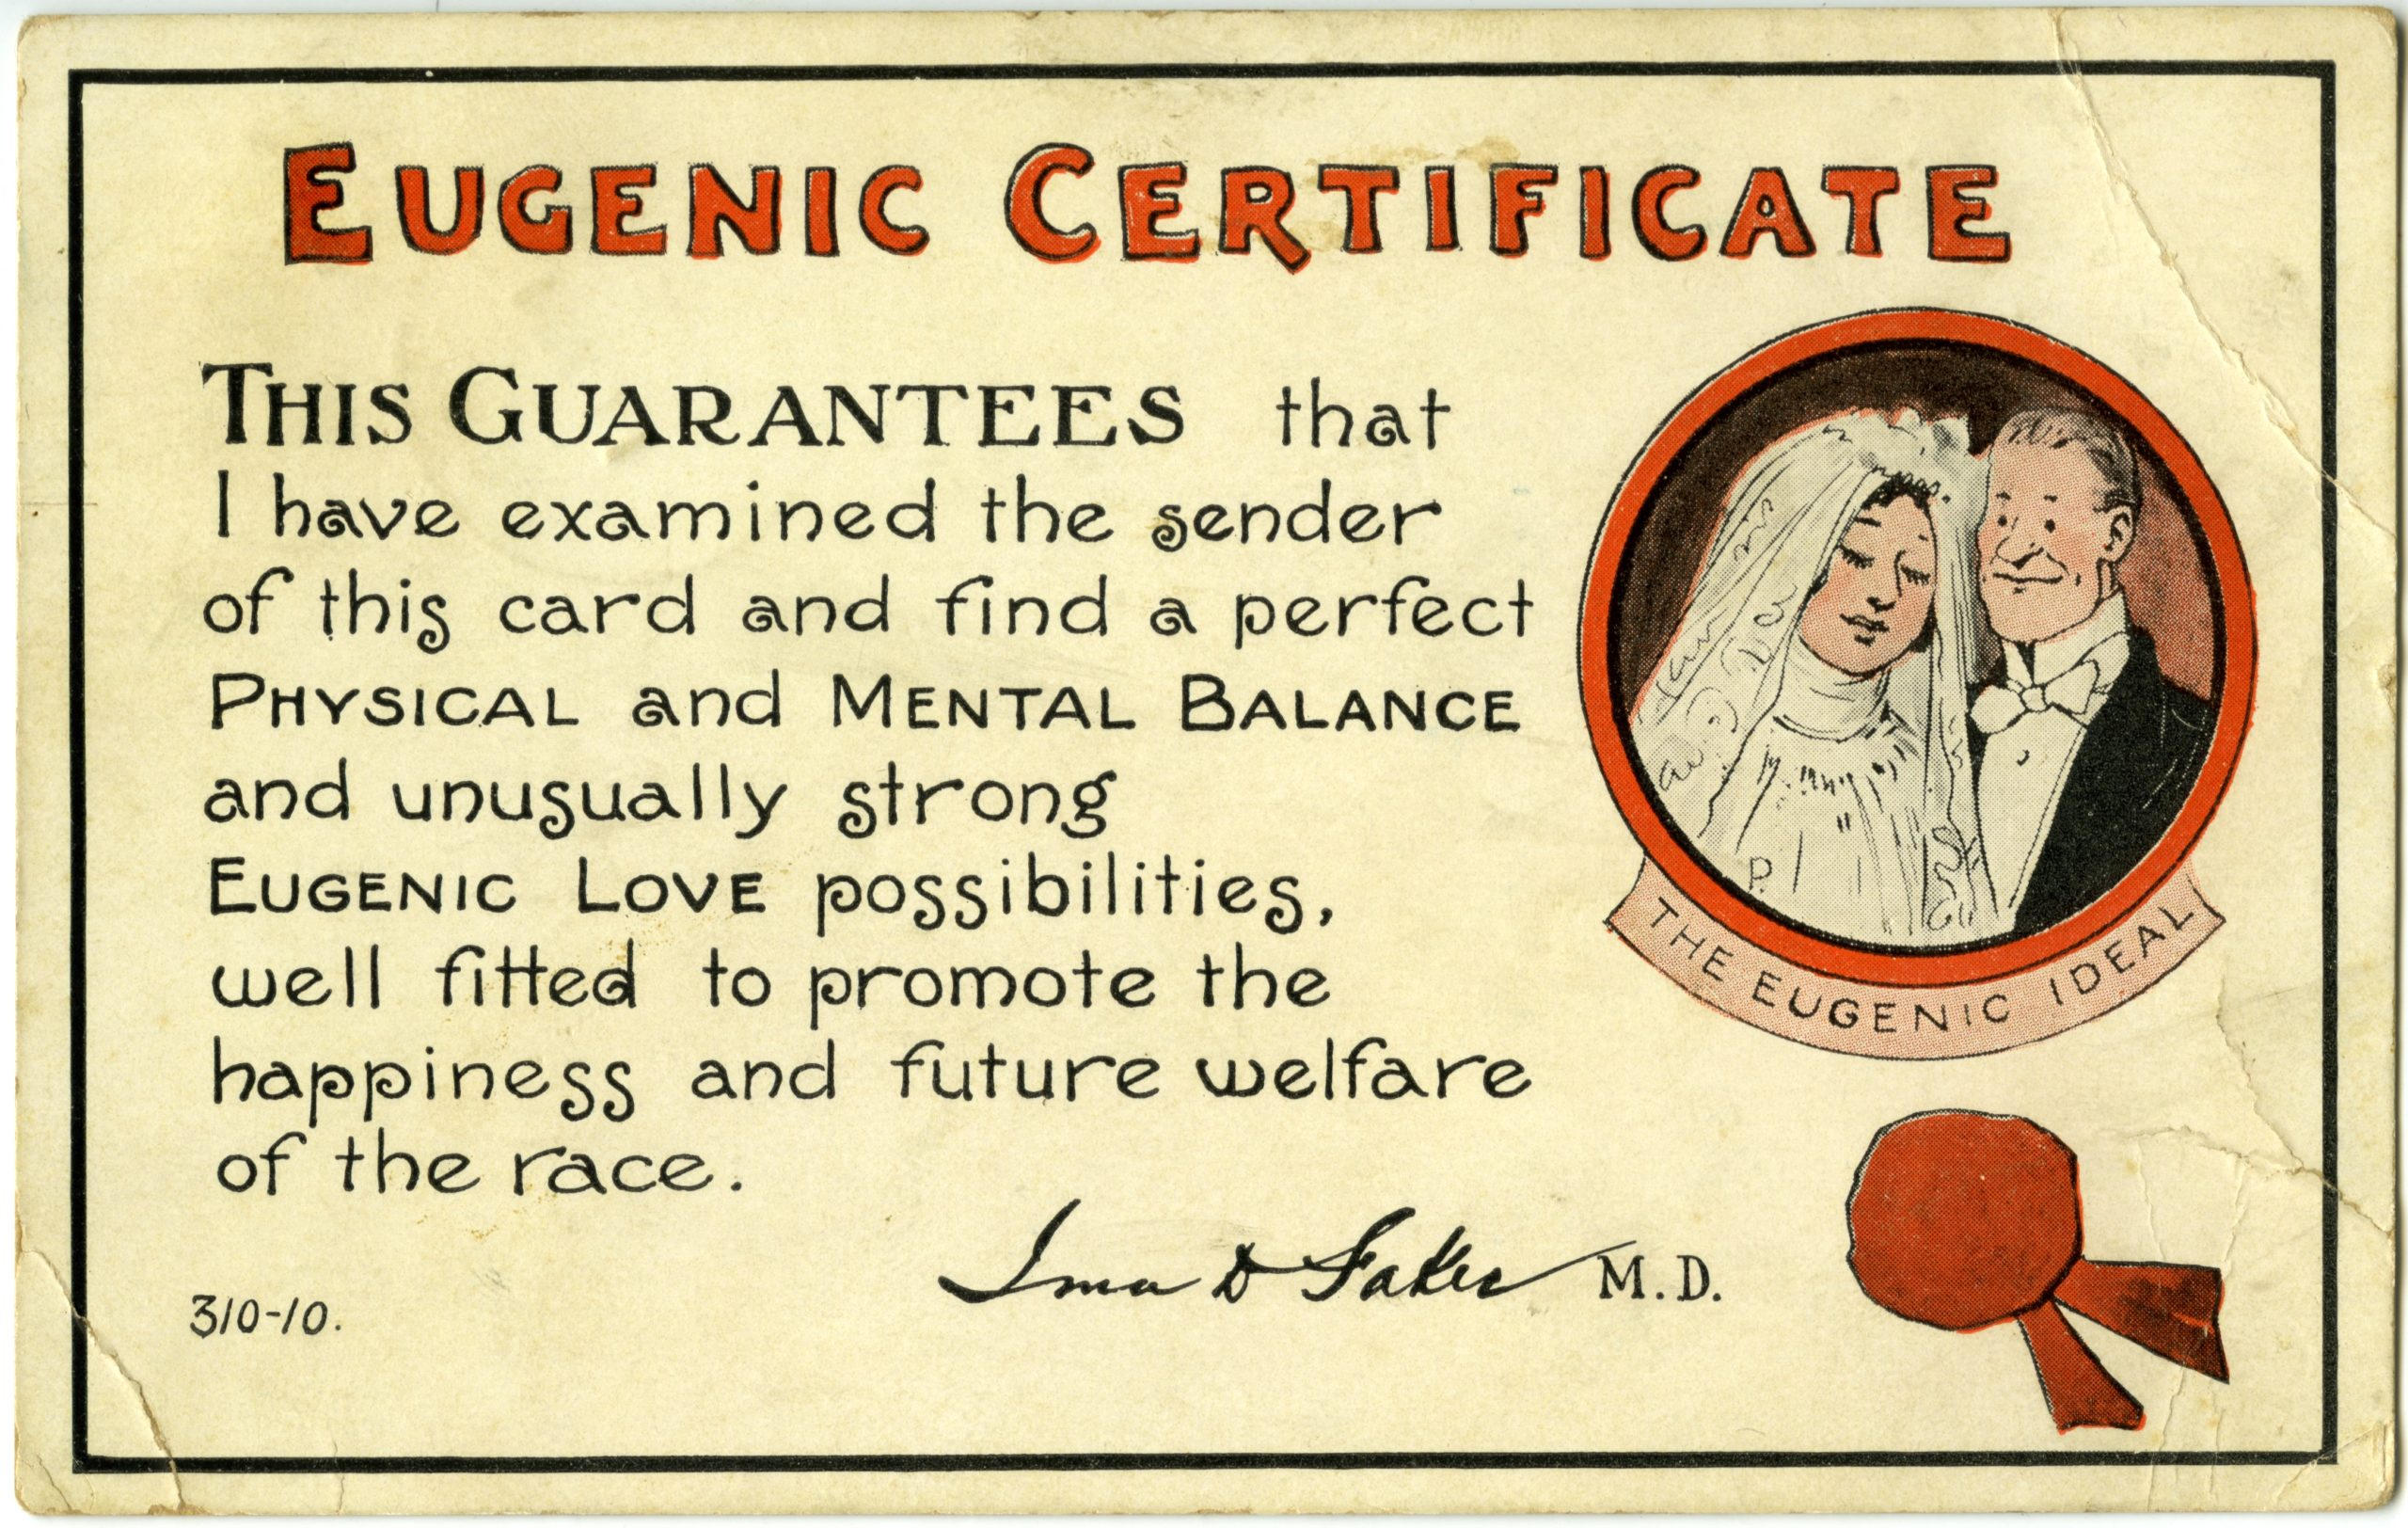 Eugenic certificate from the 1900s